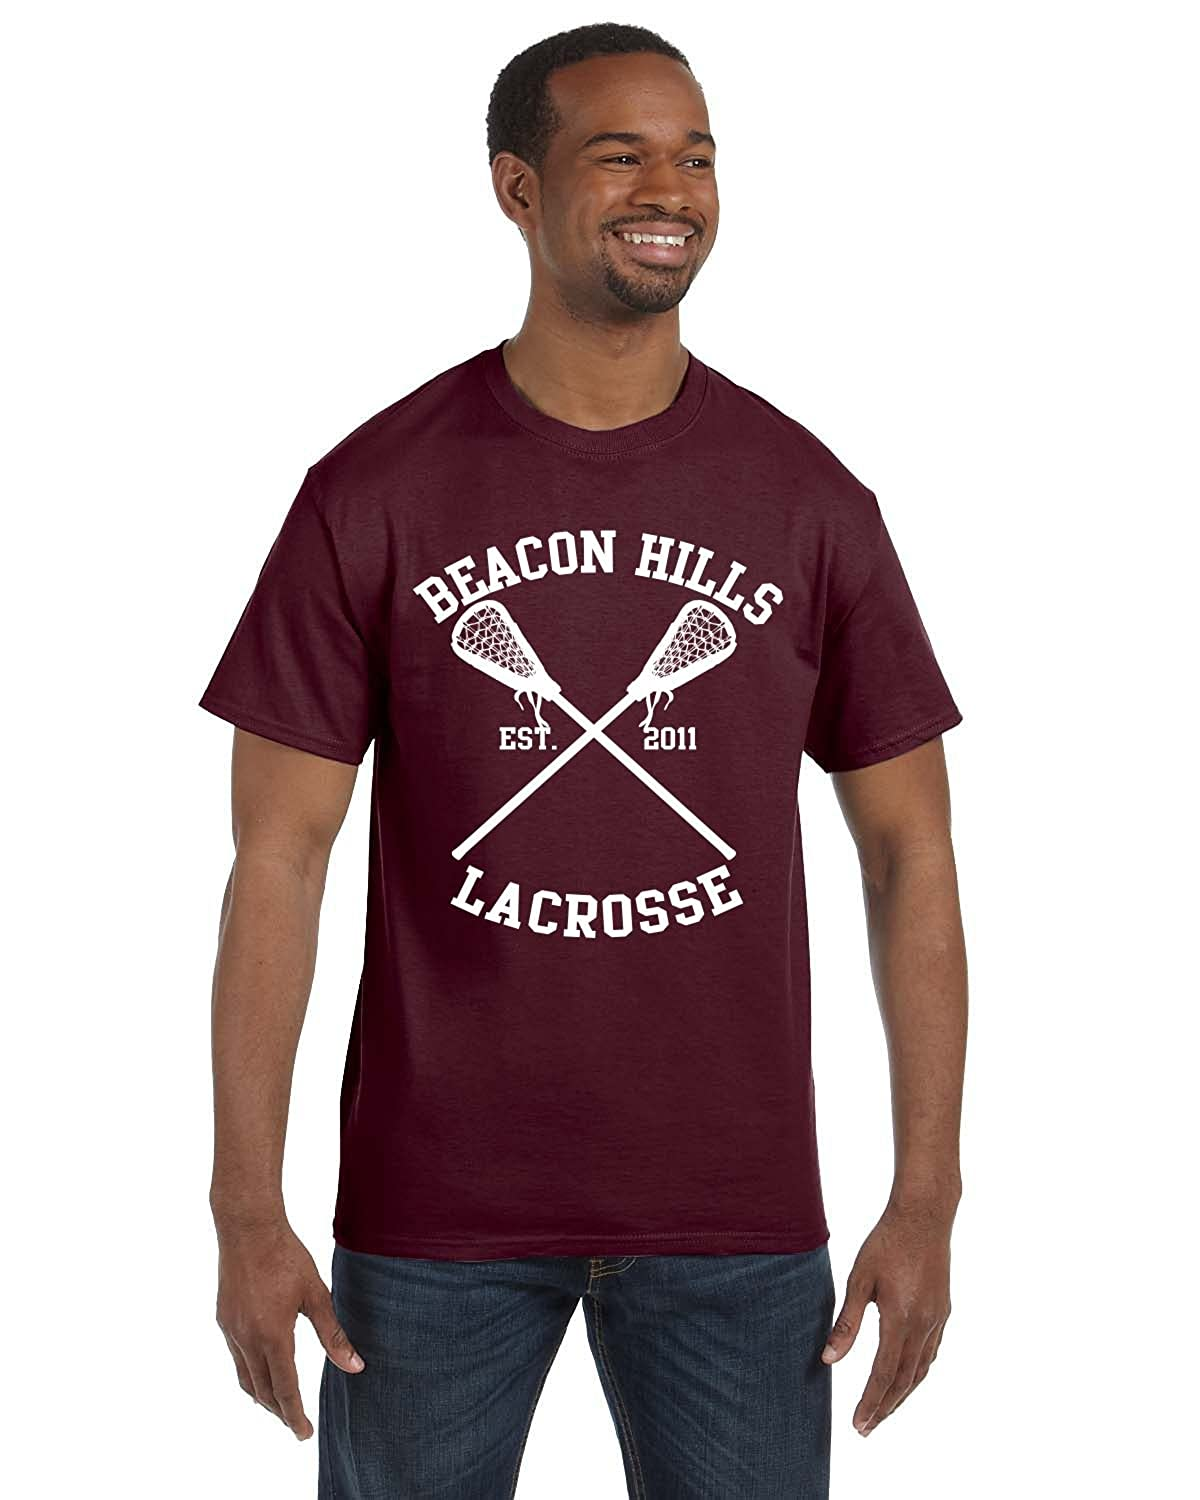 Allntrends Men's T Shirt Beacon Hills Lacrosse Player Name Number Maroon Color